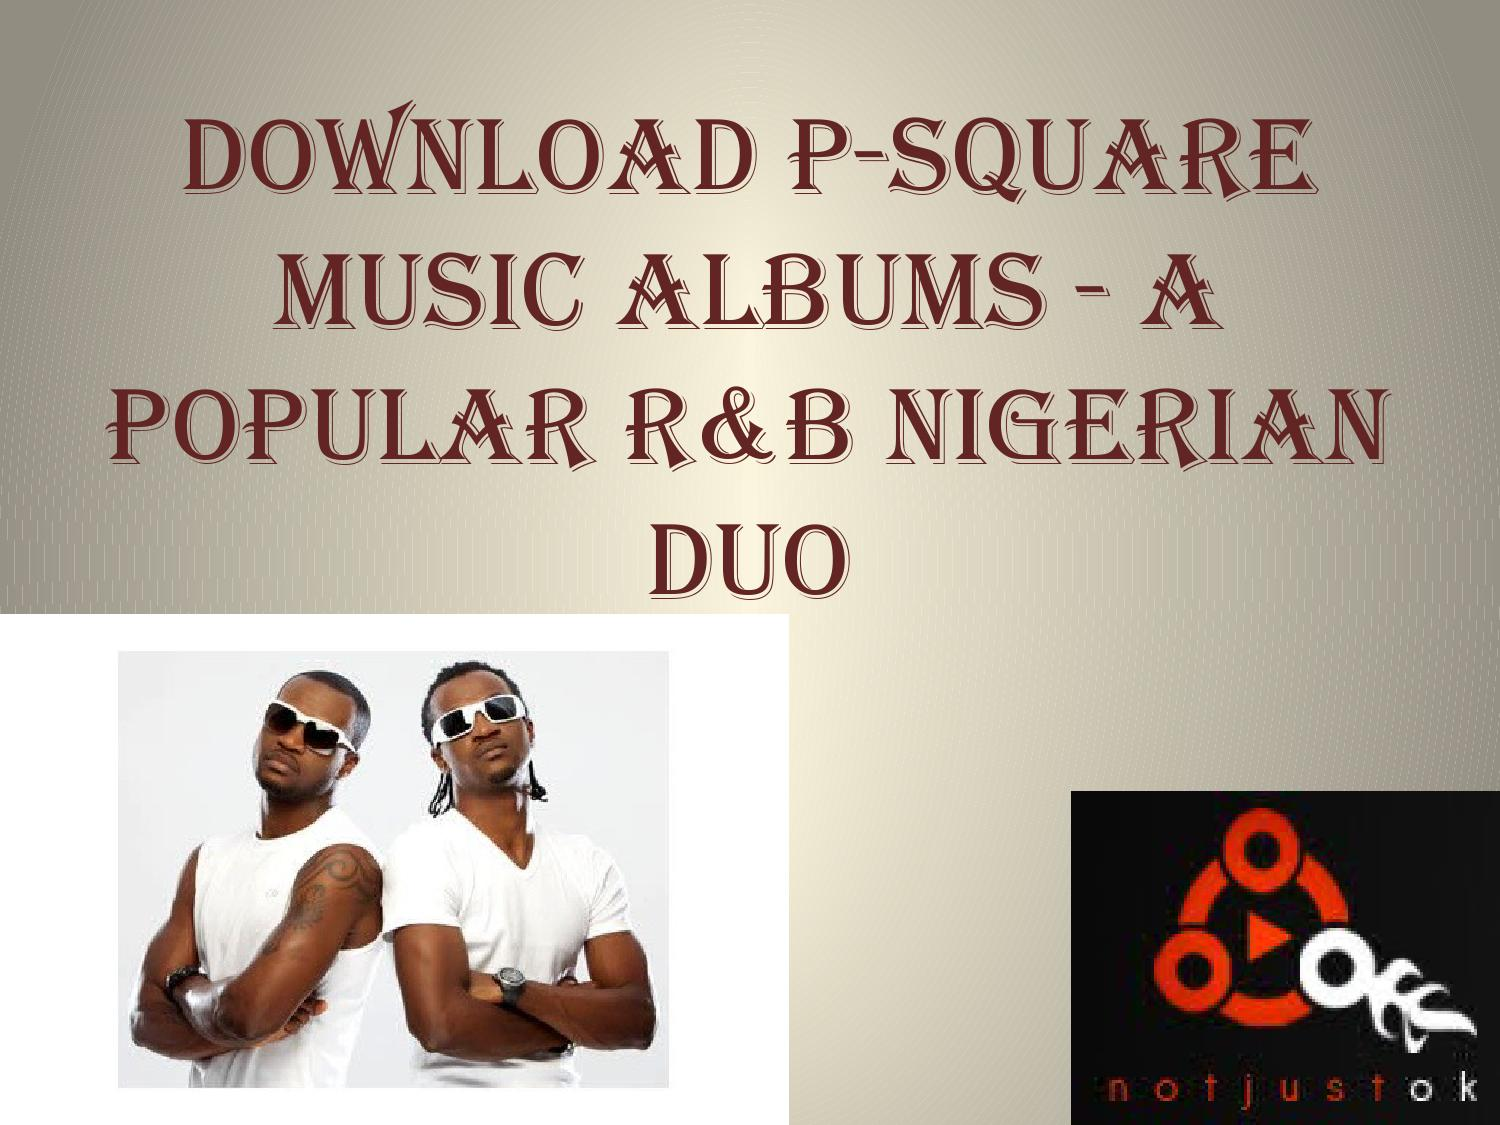 Download p square music albums a popular r&b nigerian duo by